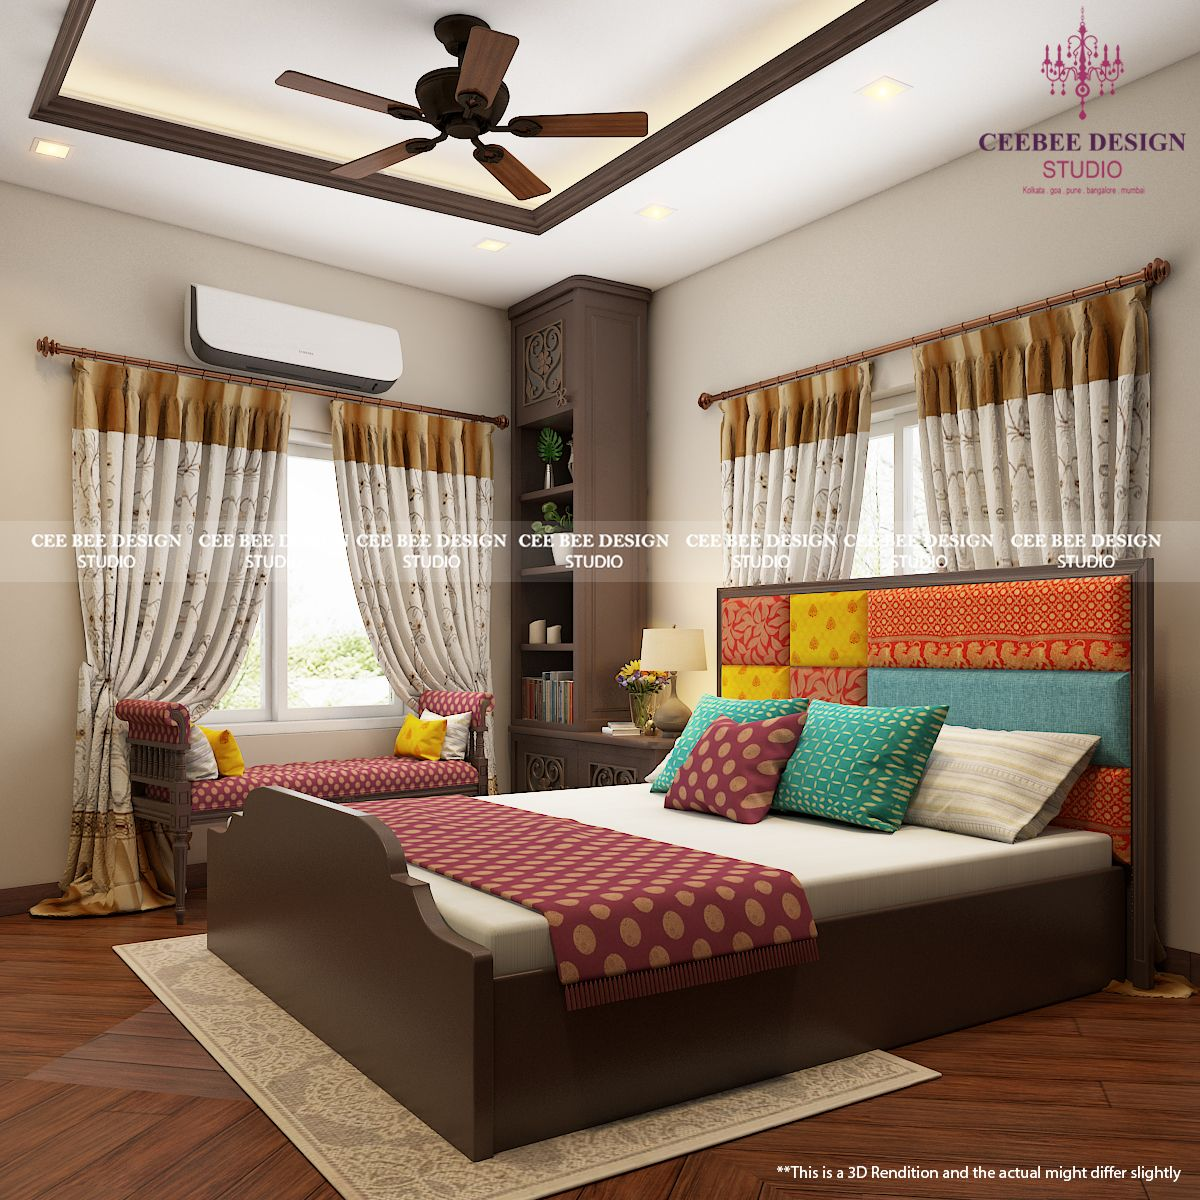 3d Design Of A Bed Room Using Duco With Images Interior